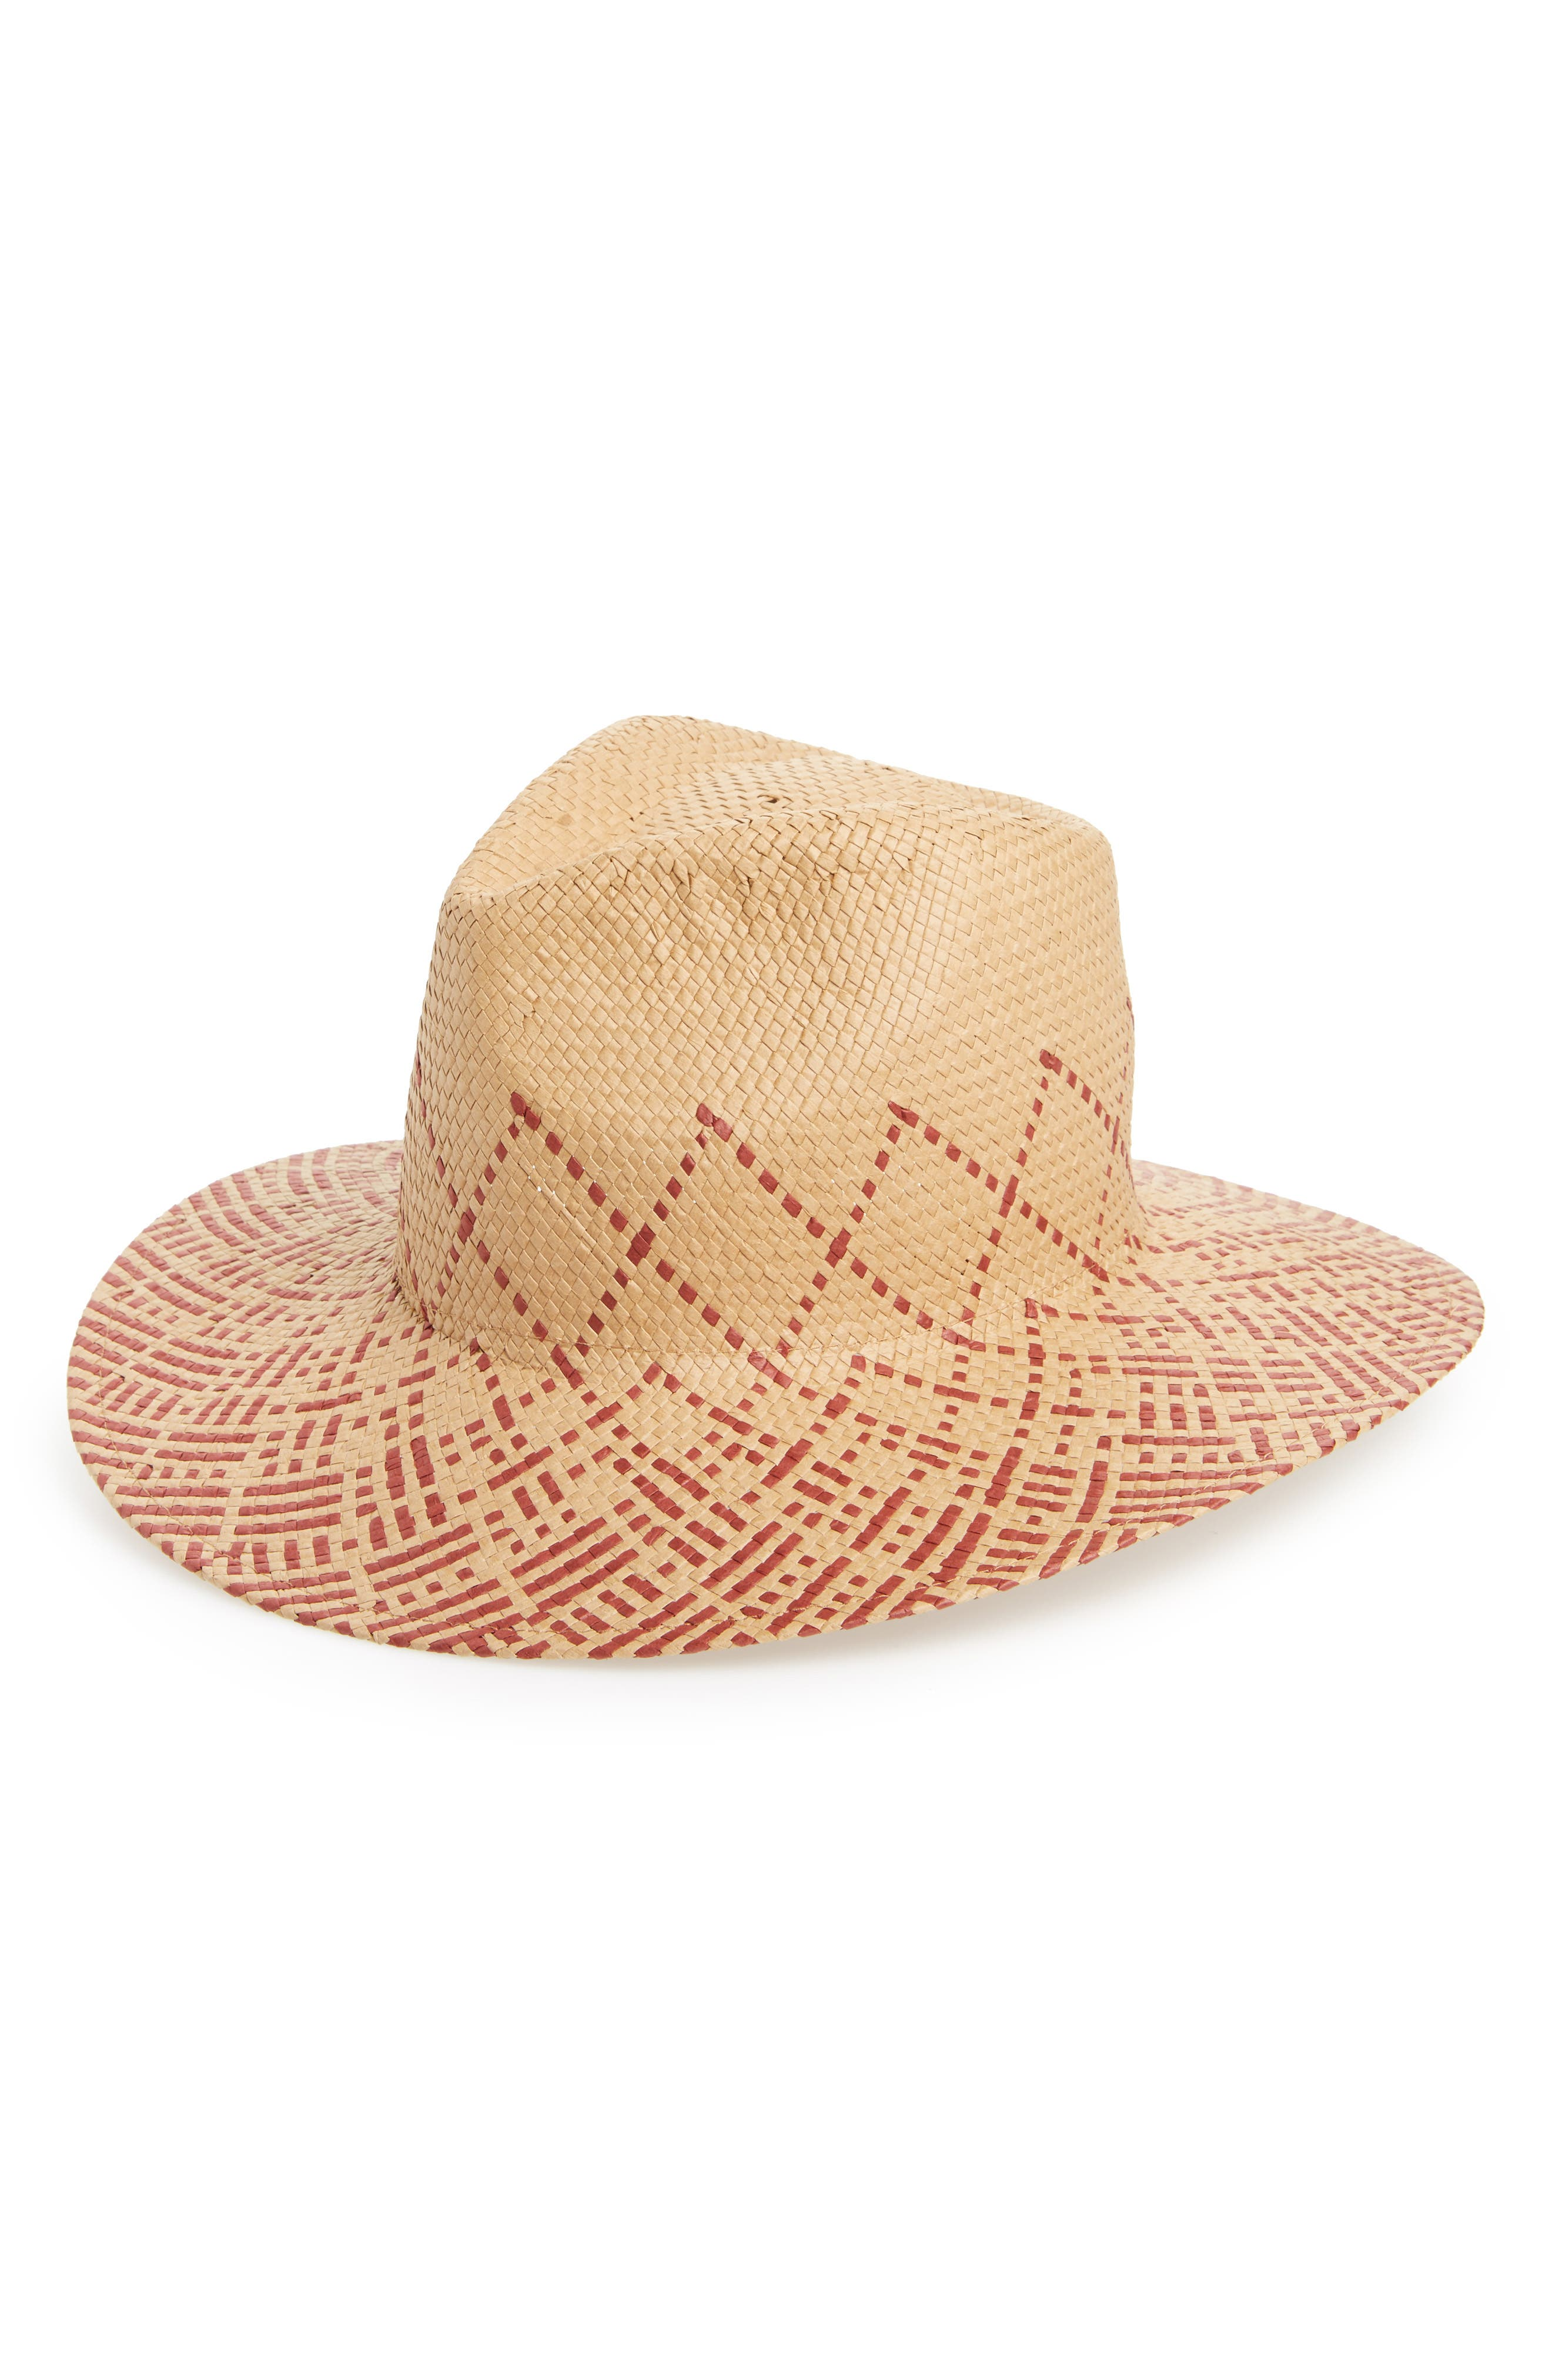 Two-Tone Straw Hat,                             Main thumbnail 1, color,                             250